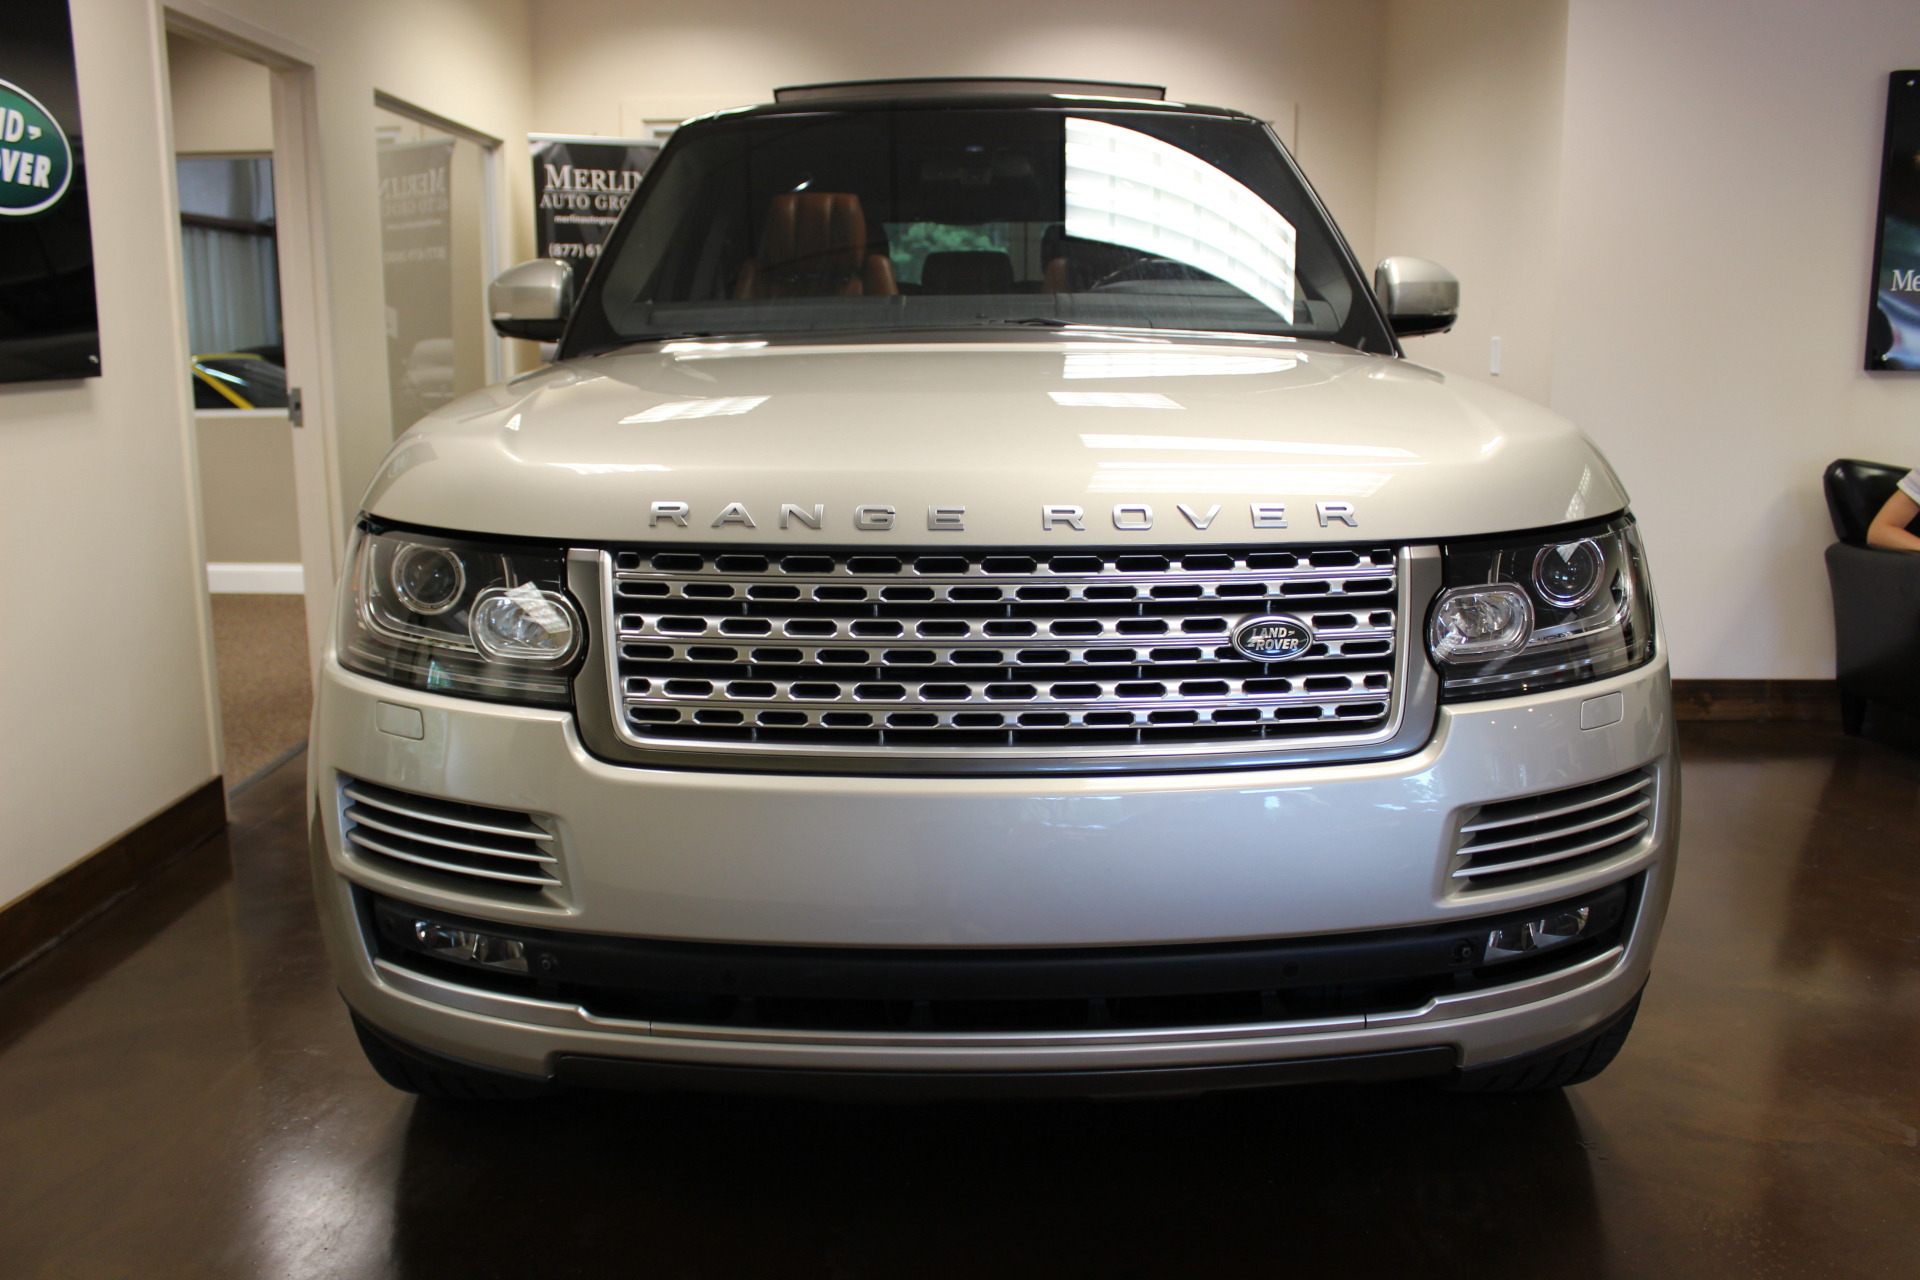 used 2014 land rover range rover luxor metallic suv v8 5l a used land rover range rover for. Black Bedroom Furniture Sets. Home Design Ideas